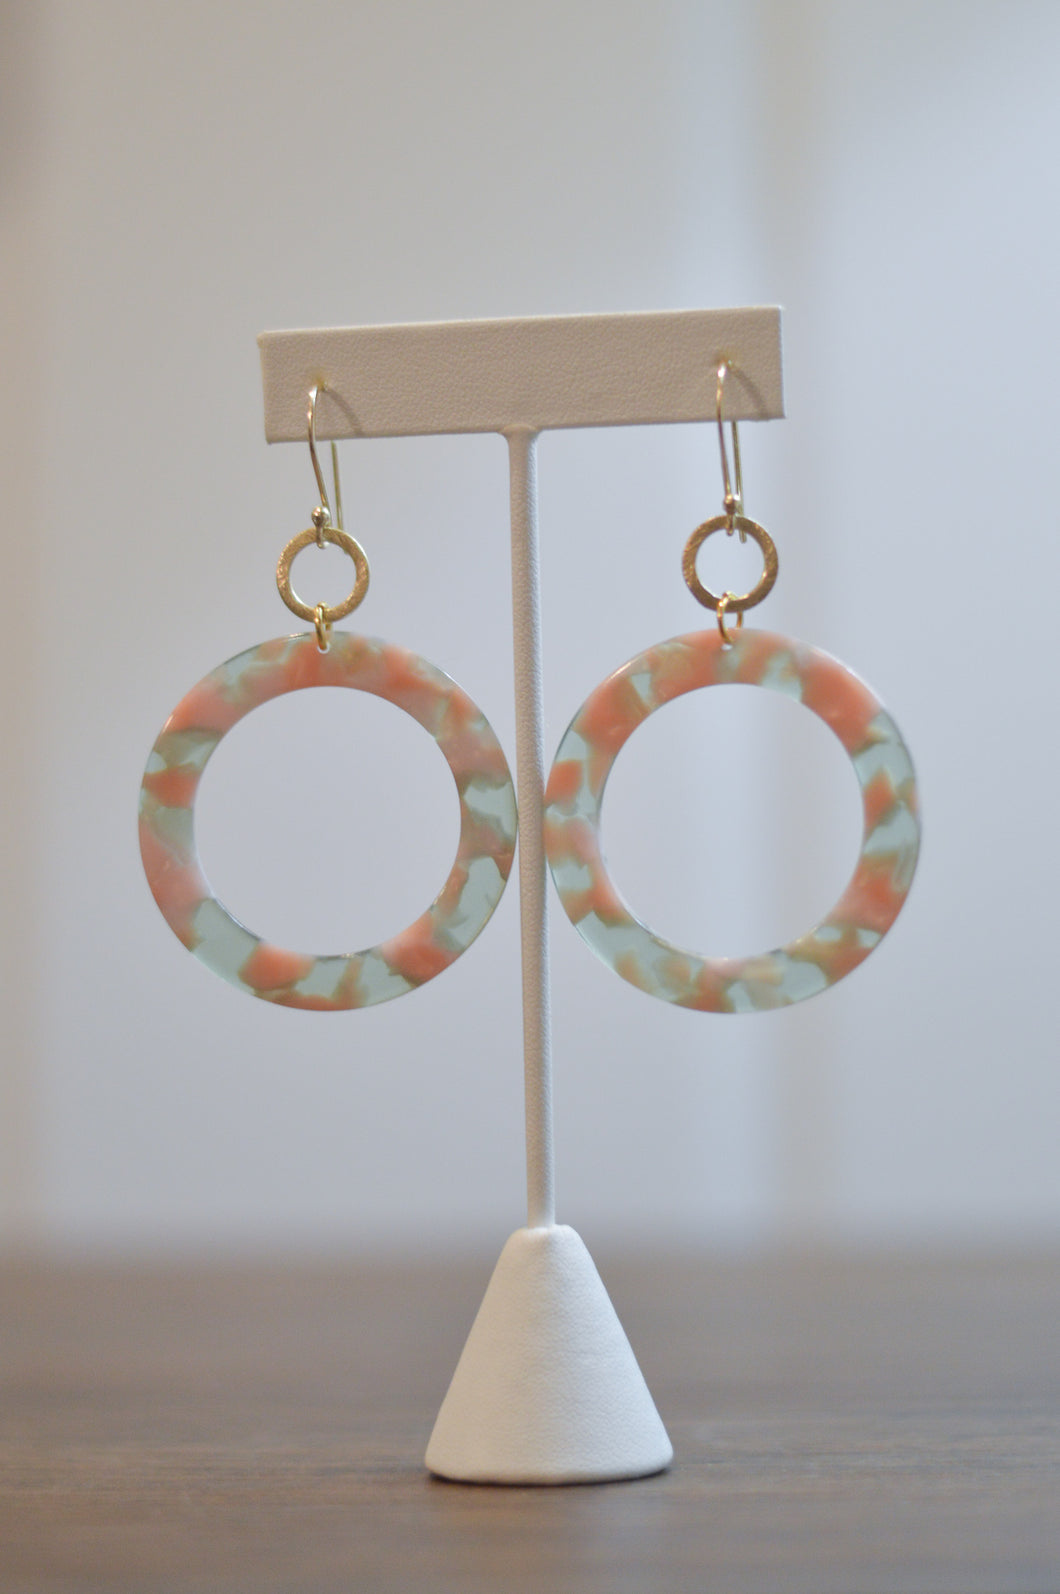 Lunar Eclipse Earrings - Blush & Sage